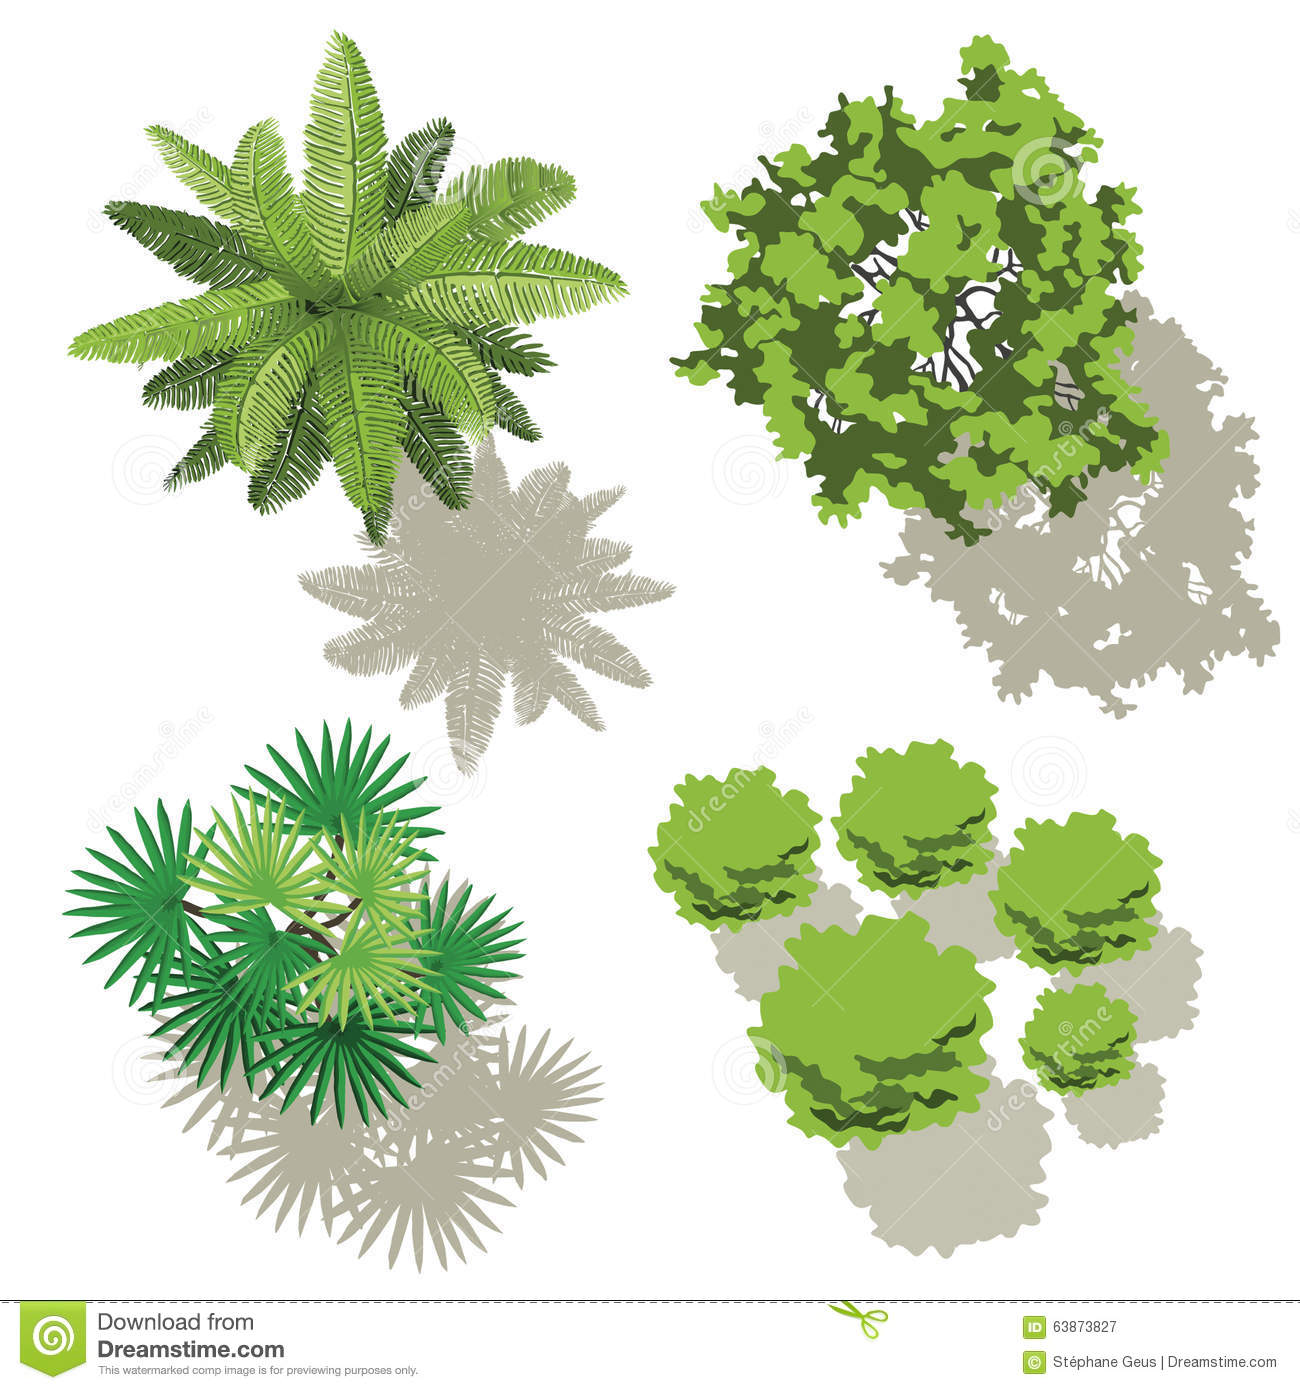 Trees Top View For Map Stock Illustration Image 63873827